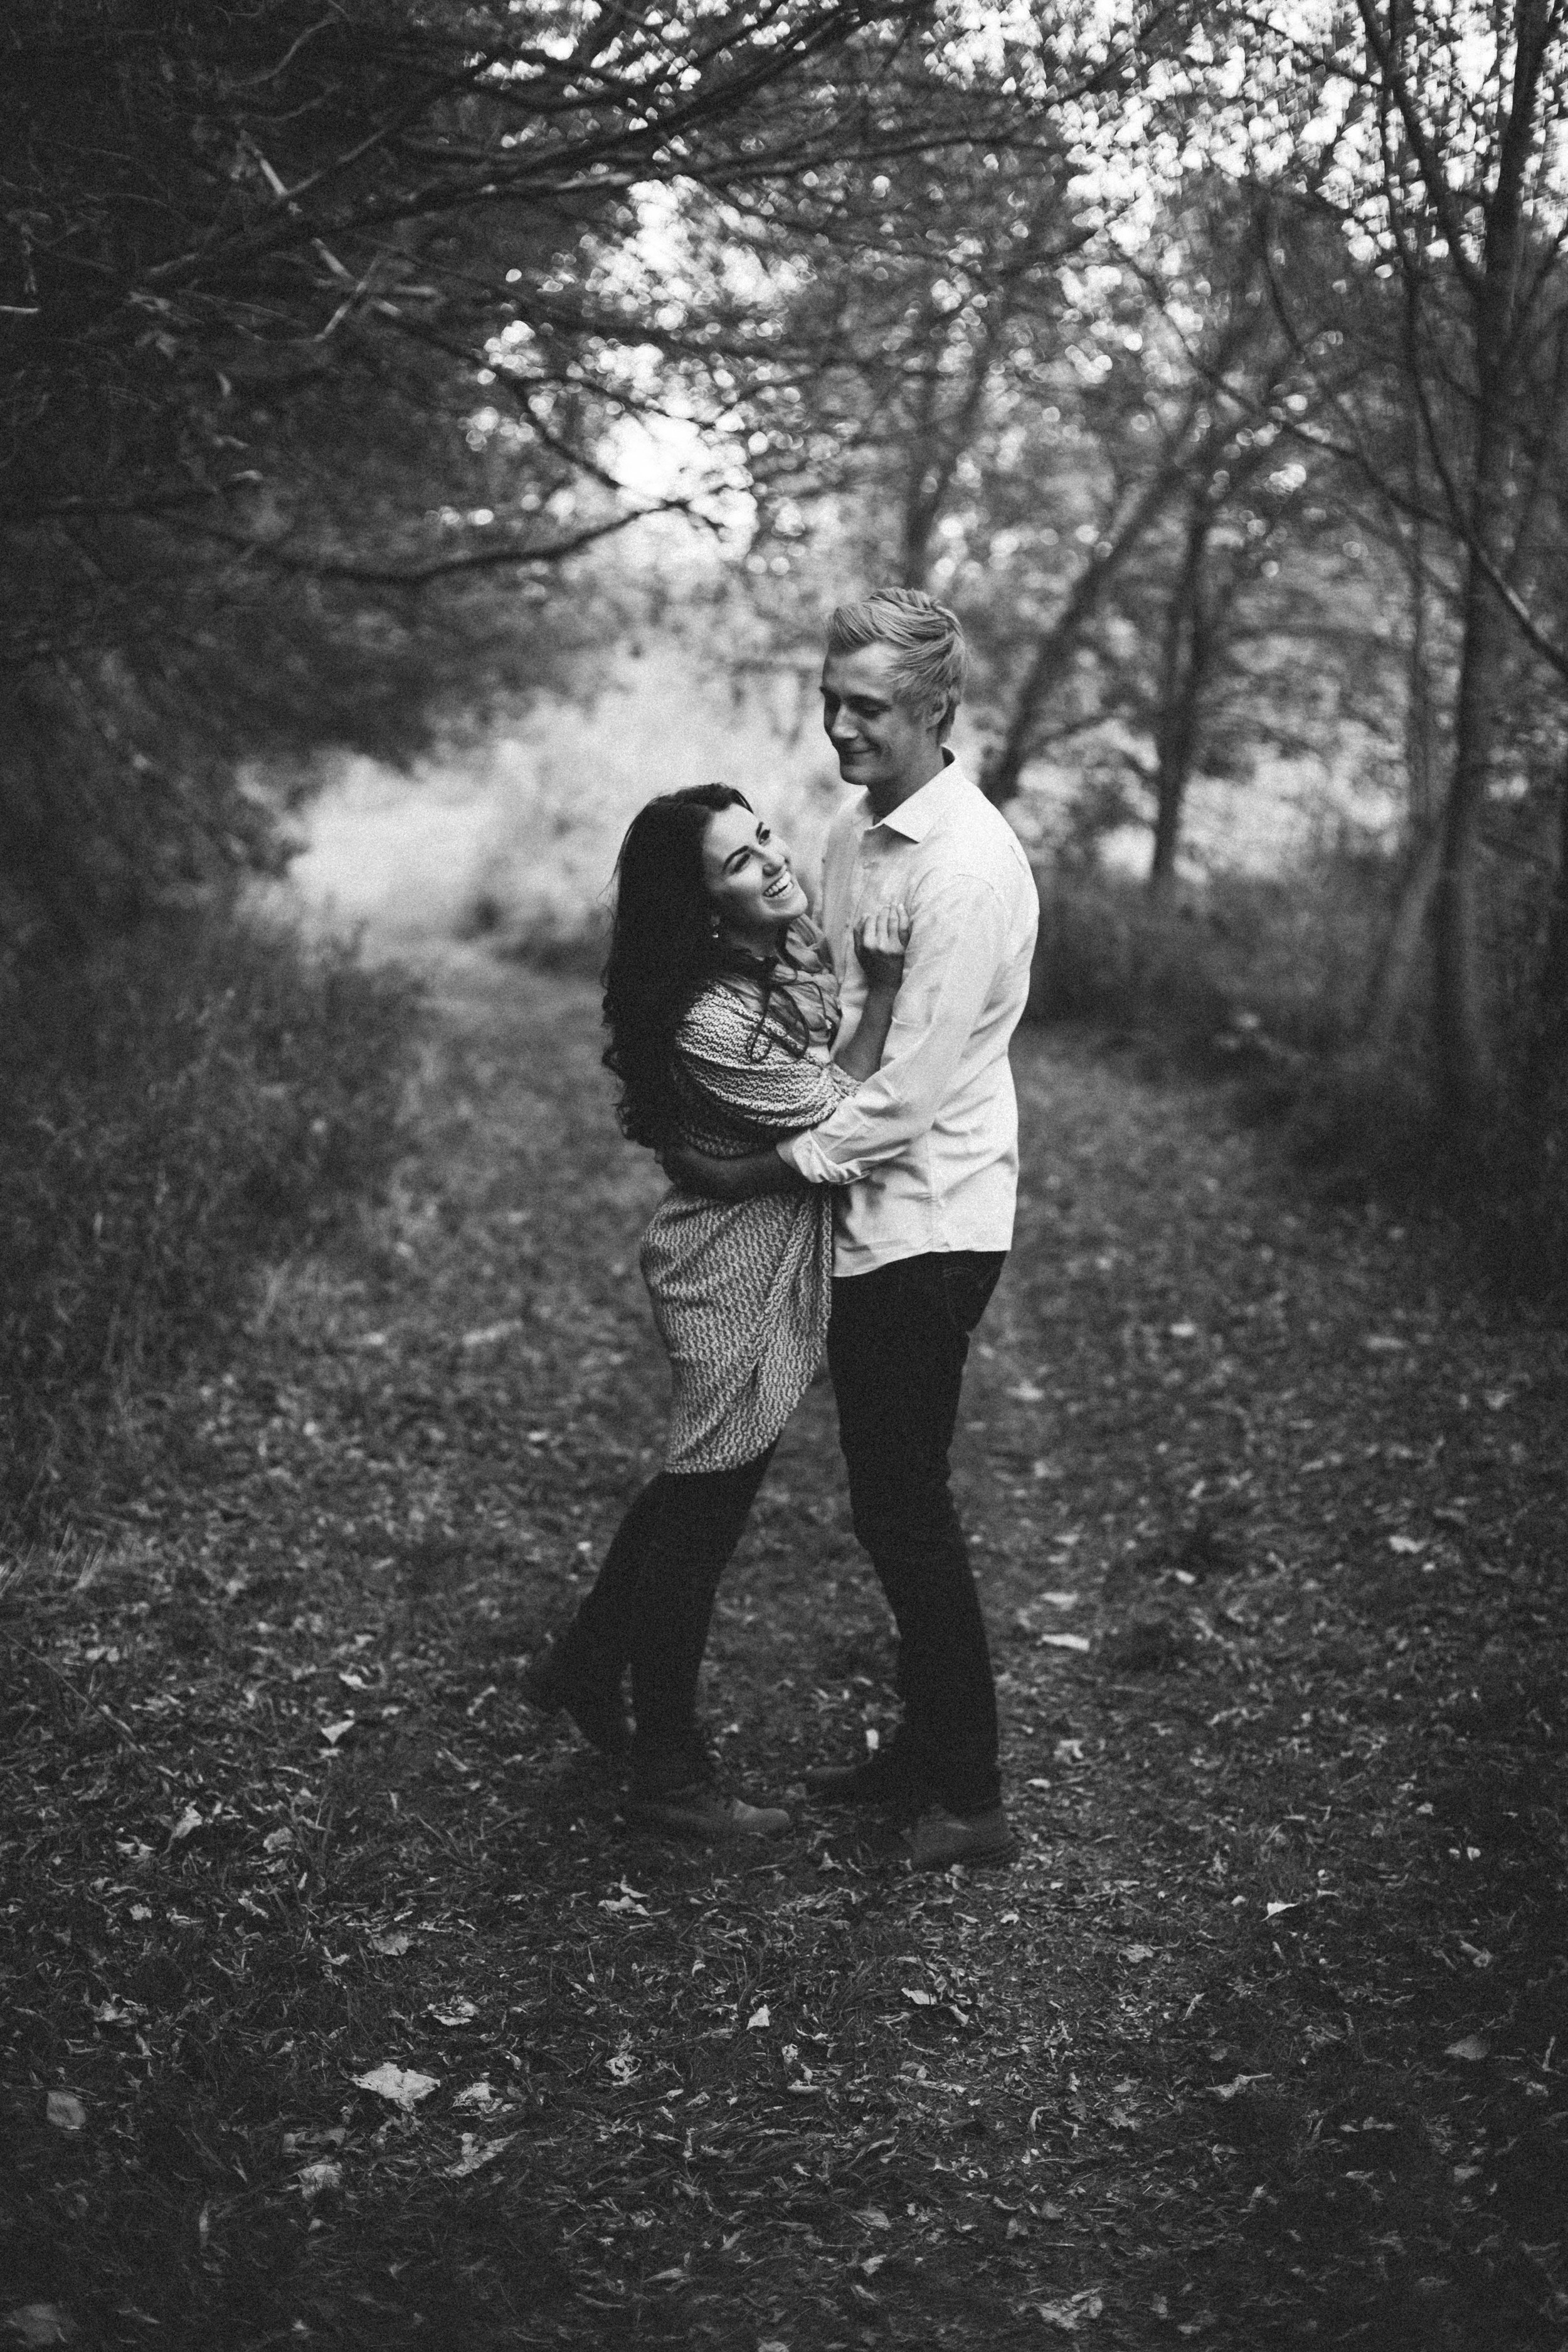 Claire-Rex-Pickar-Engagement-Photography-Collection-347.jpg